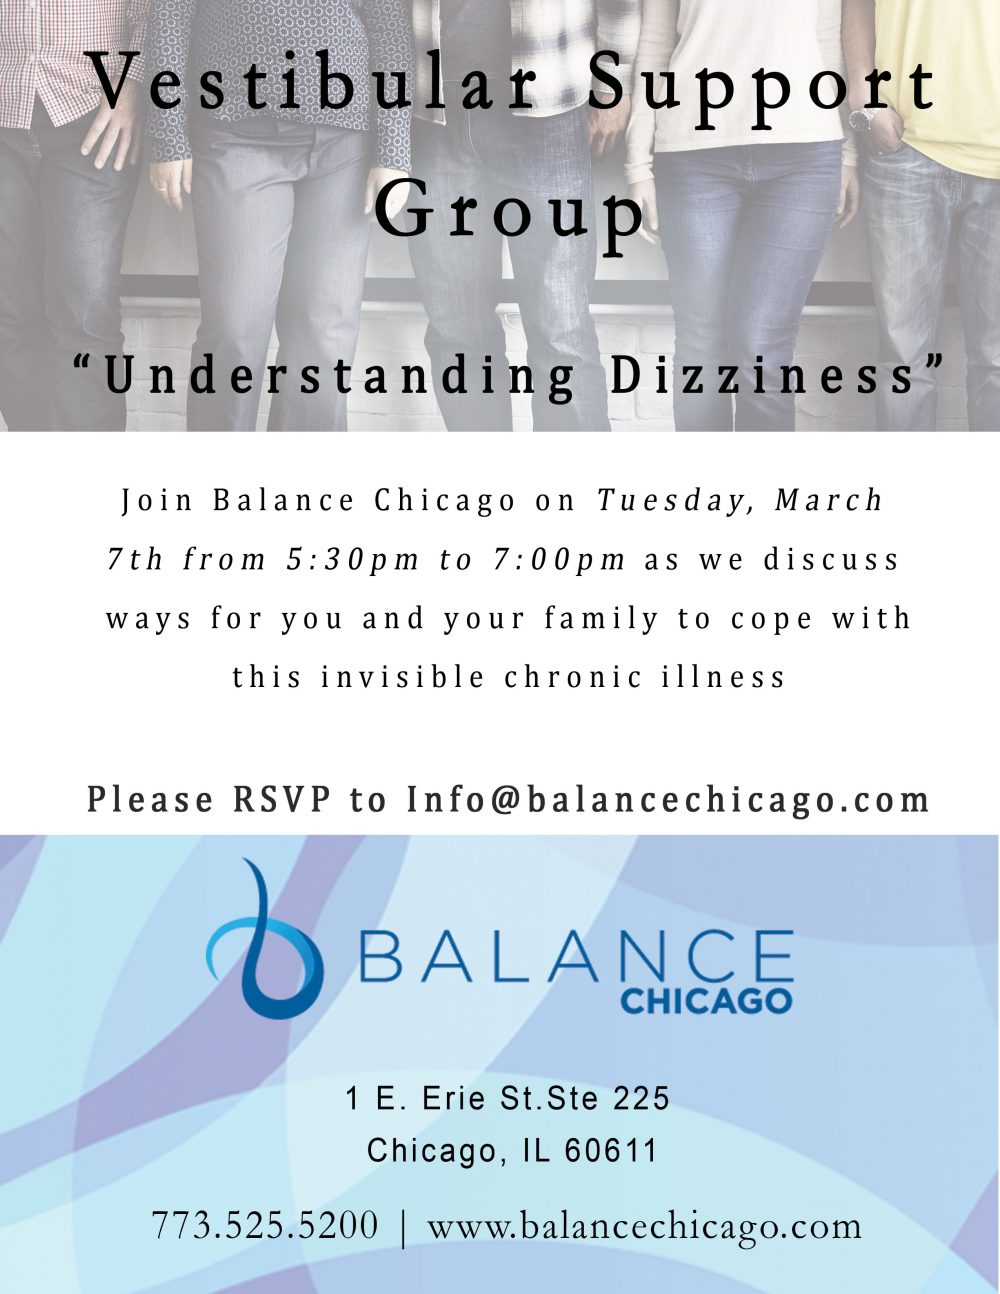 Join us for our next vestibular support group on March 7th.